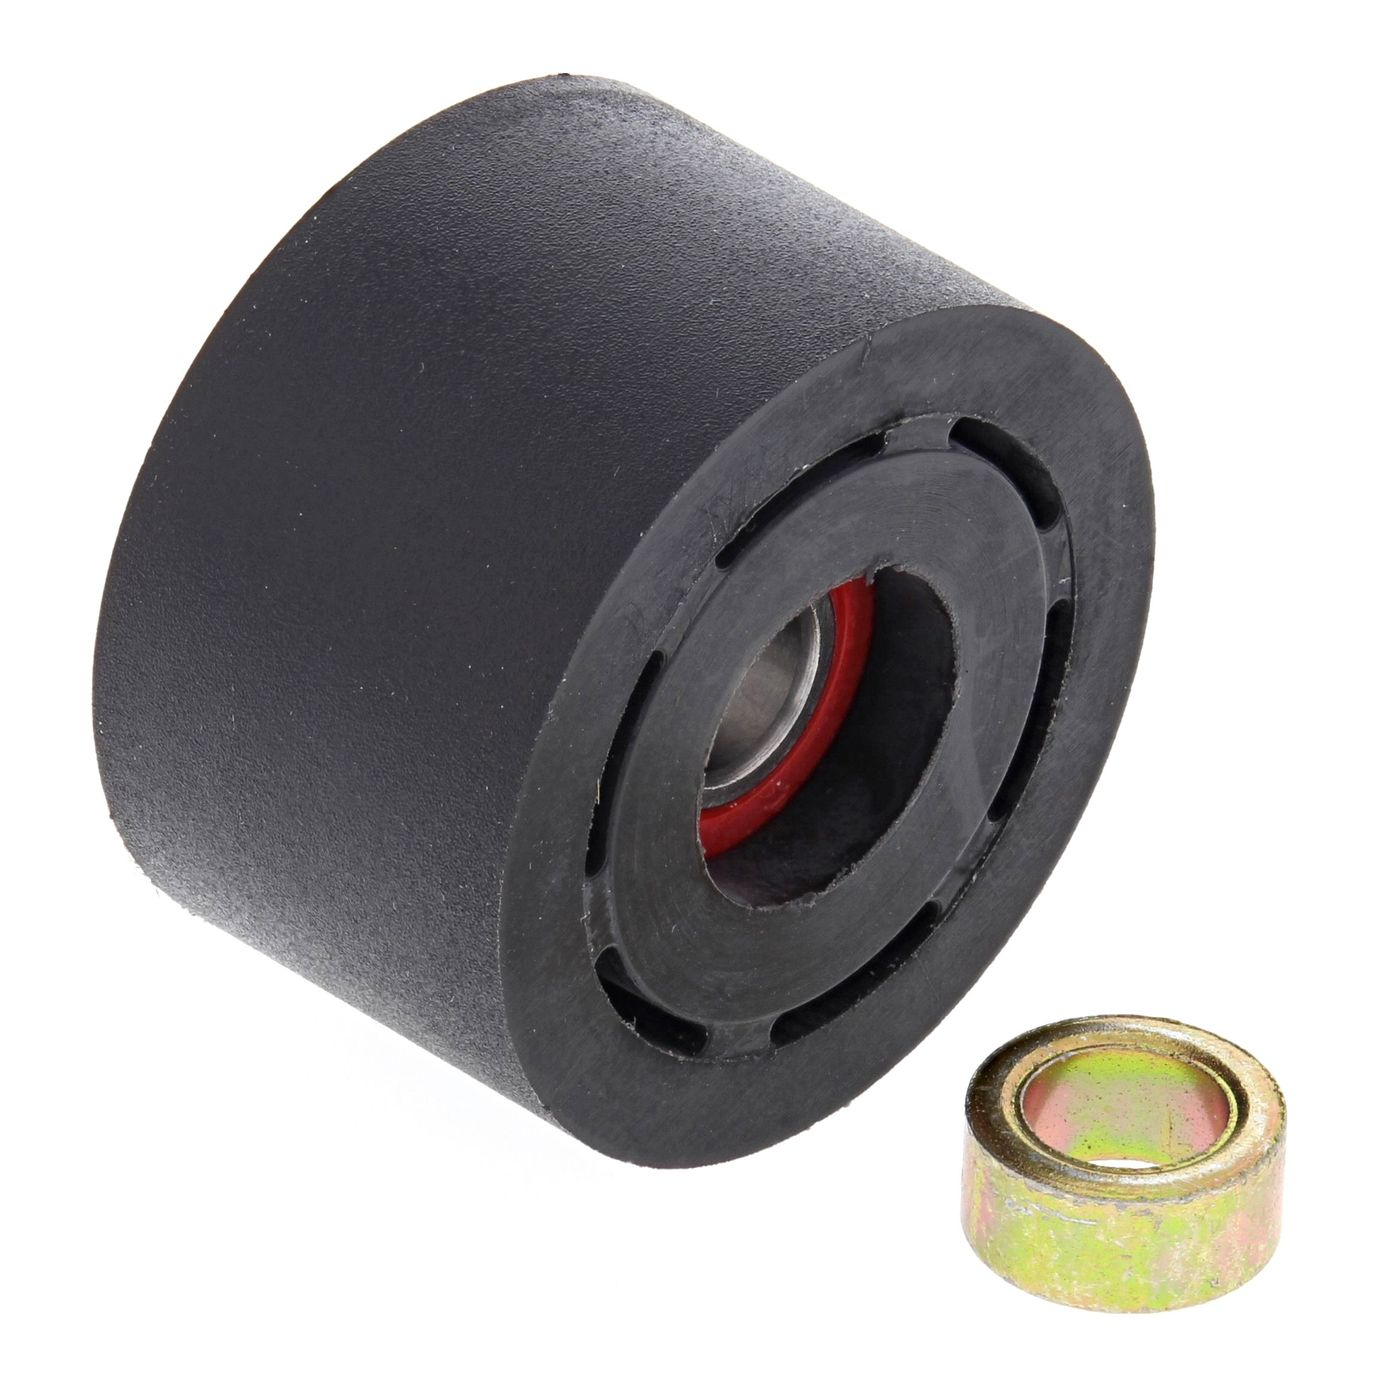 Wrp Chain Rollers - WRP795014 image